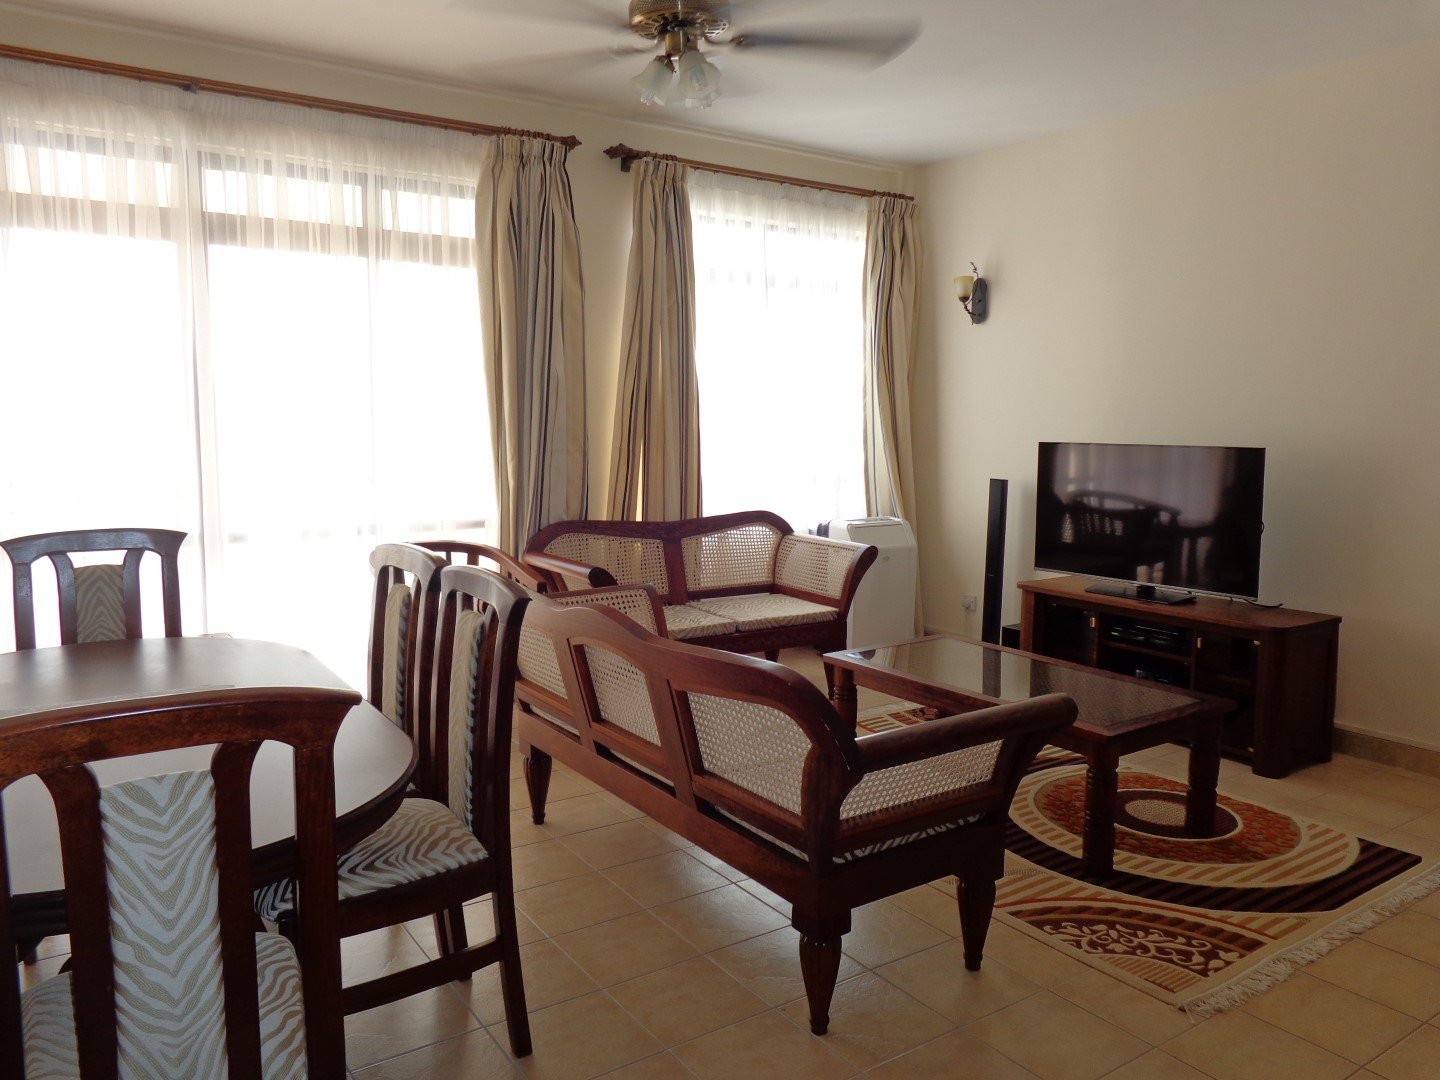 3br fully furnished apartment for rent in Nyali- Impalla suites.